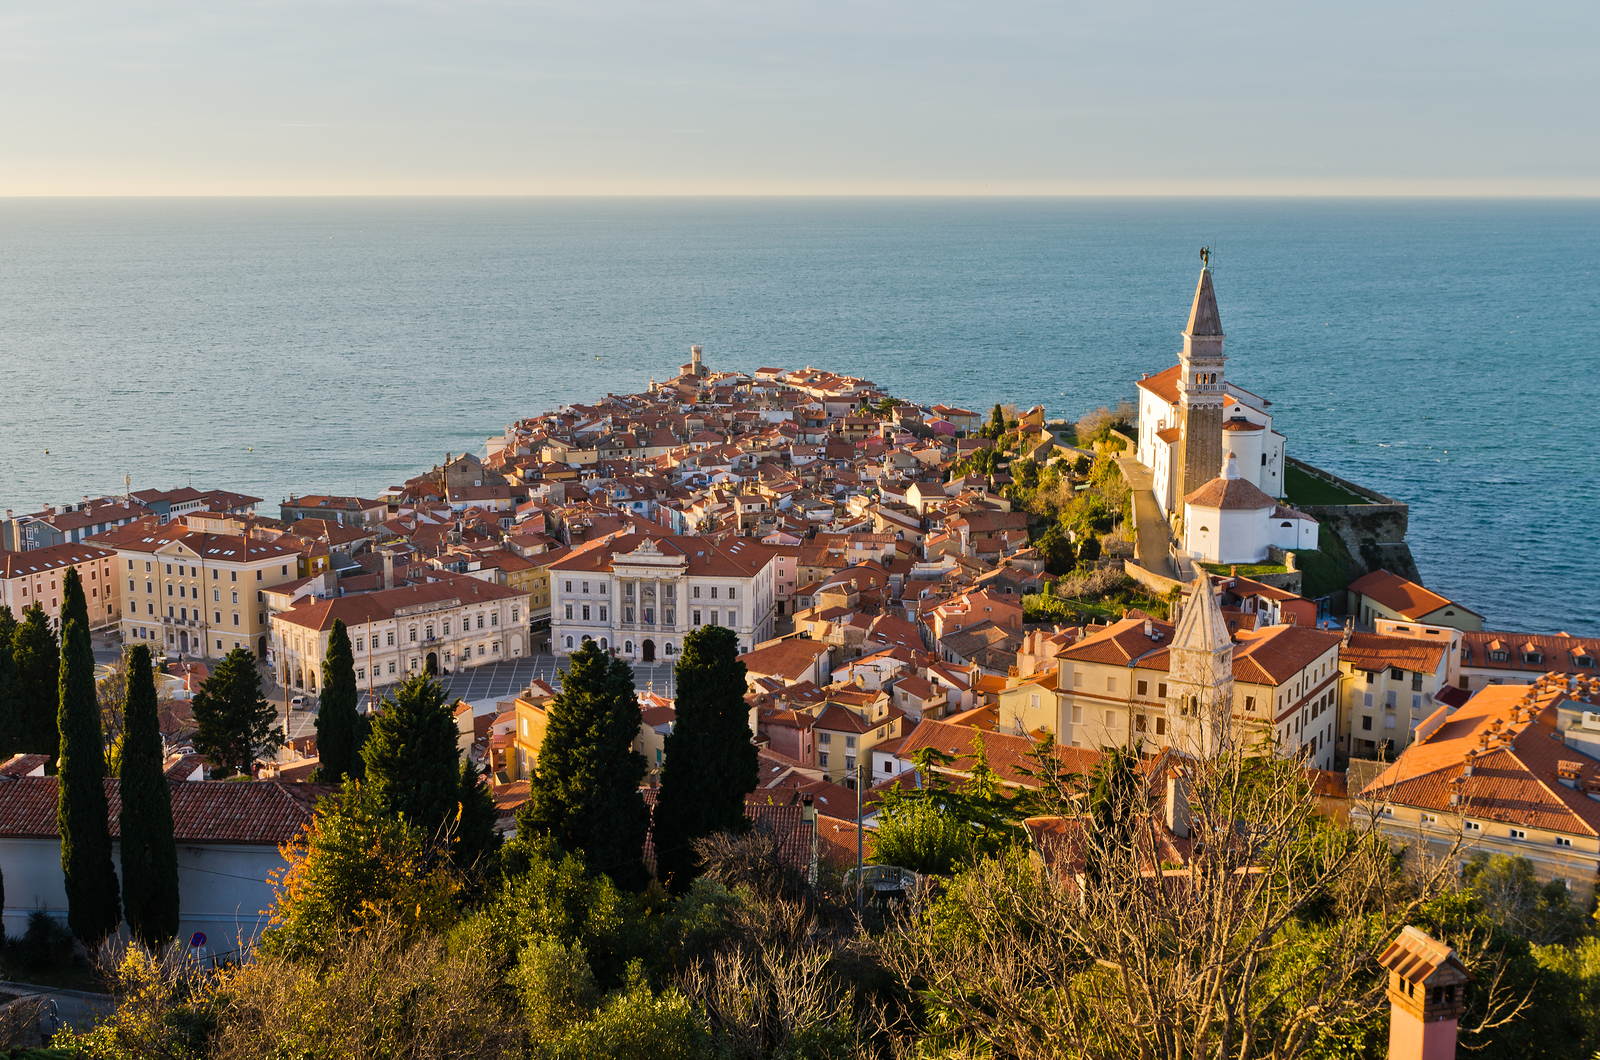 Panoramic view of adriatic sea from the hill above the city of Piran in Istria, Slovenia